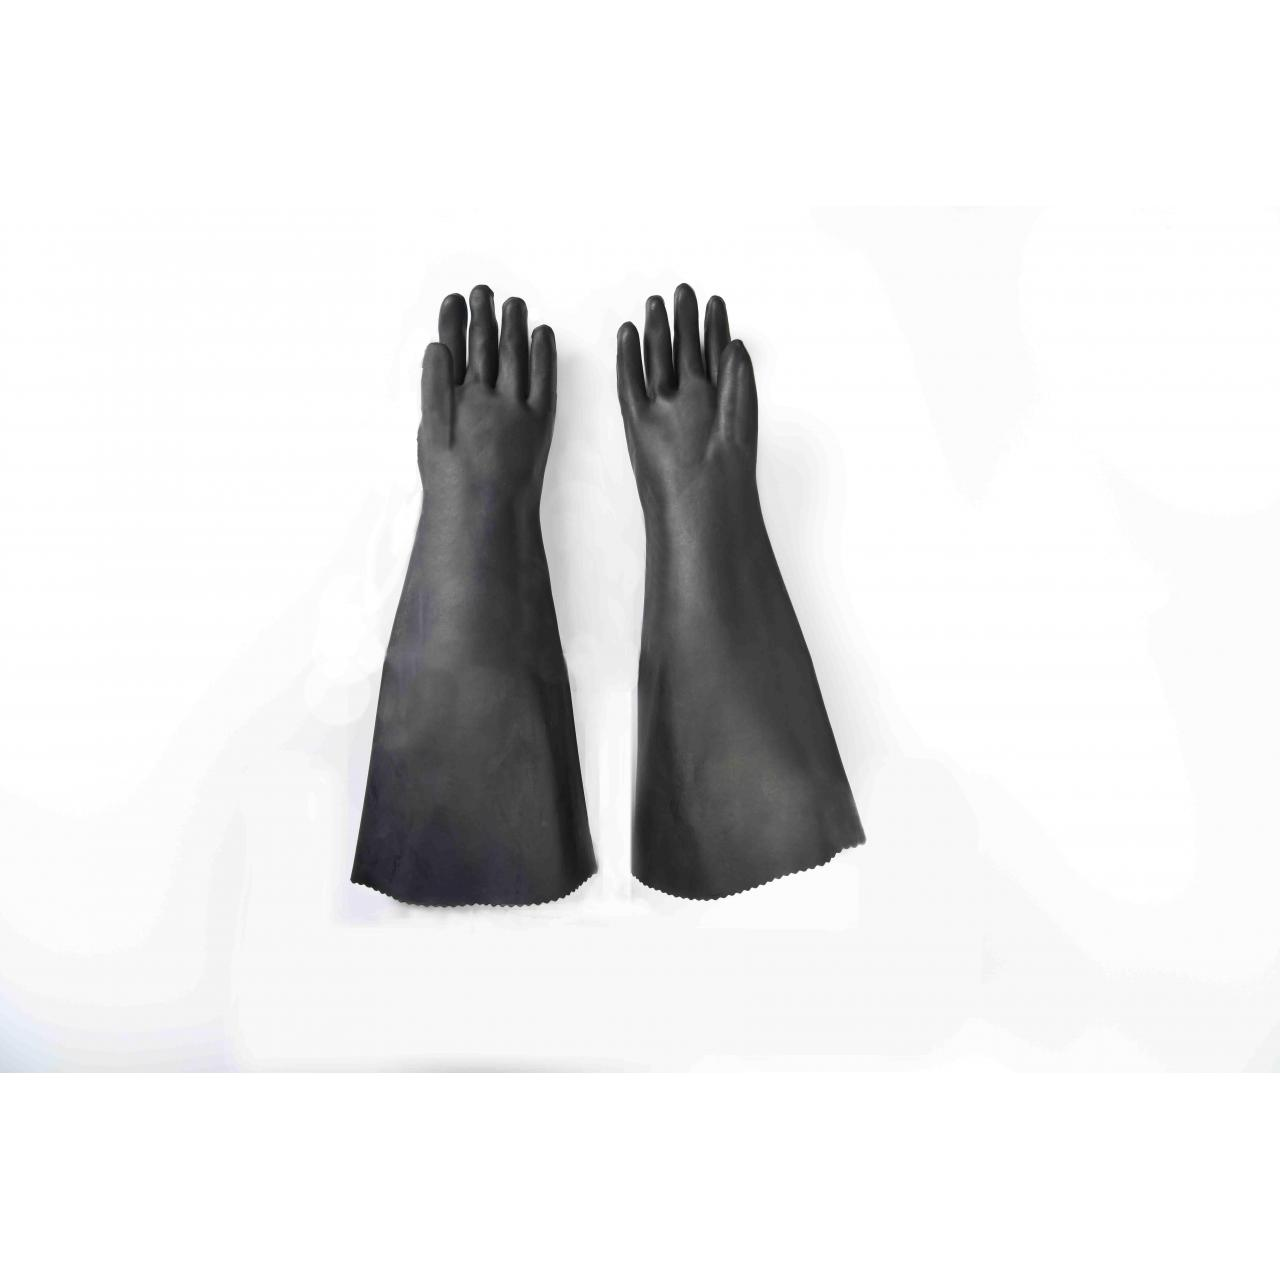 Industrial rubber gloves 24 rubber glove with cotton linning-smooth finish Manufactures